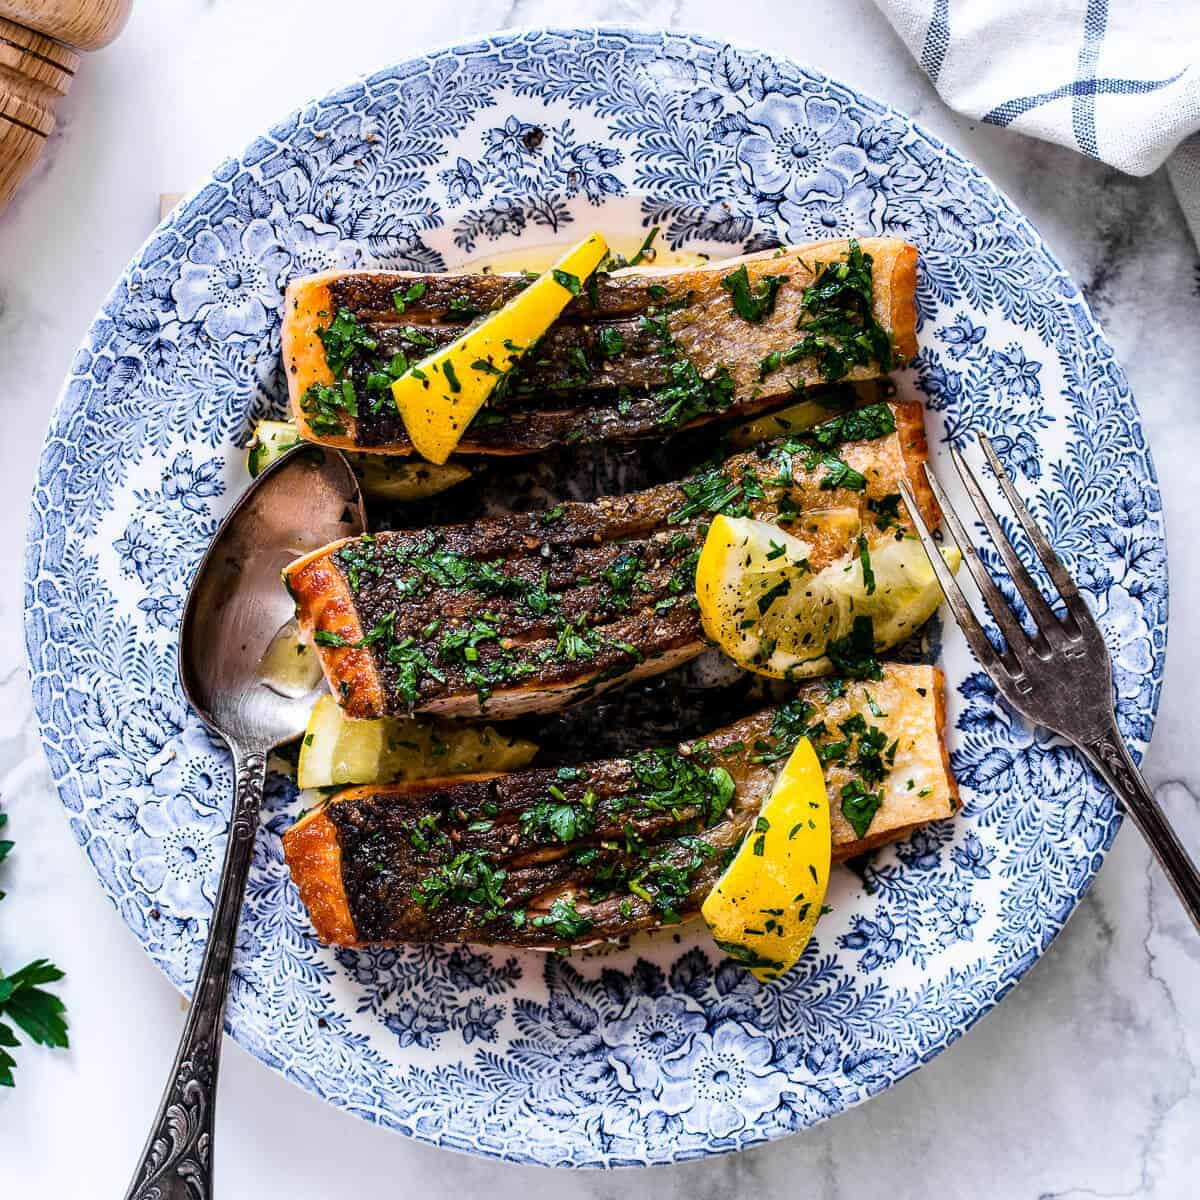 pan fried salmon fillet with crispy skin and lemon herb butter on a blue vintage plate.